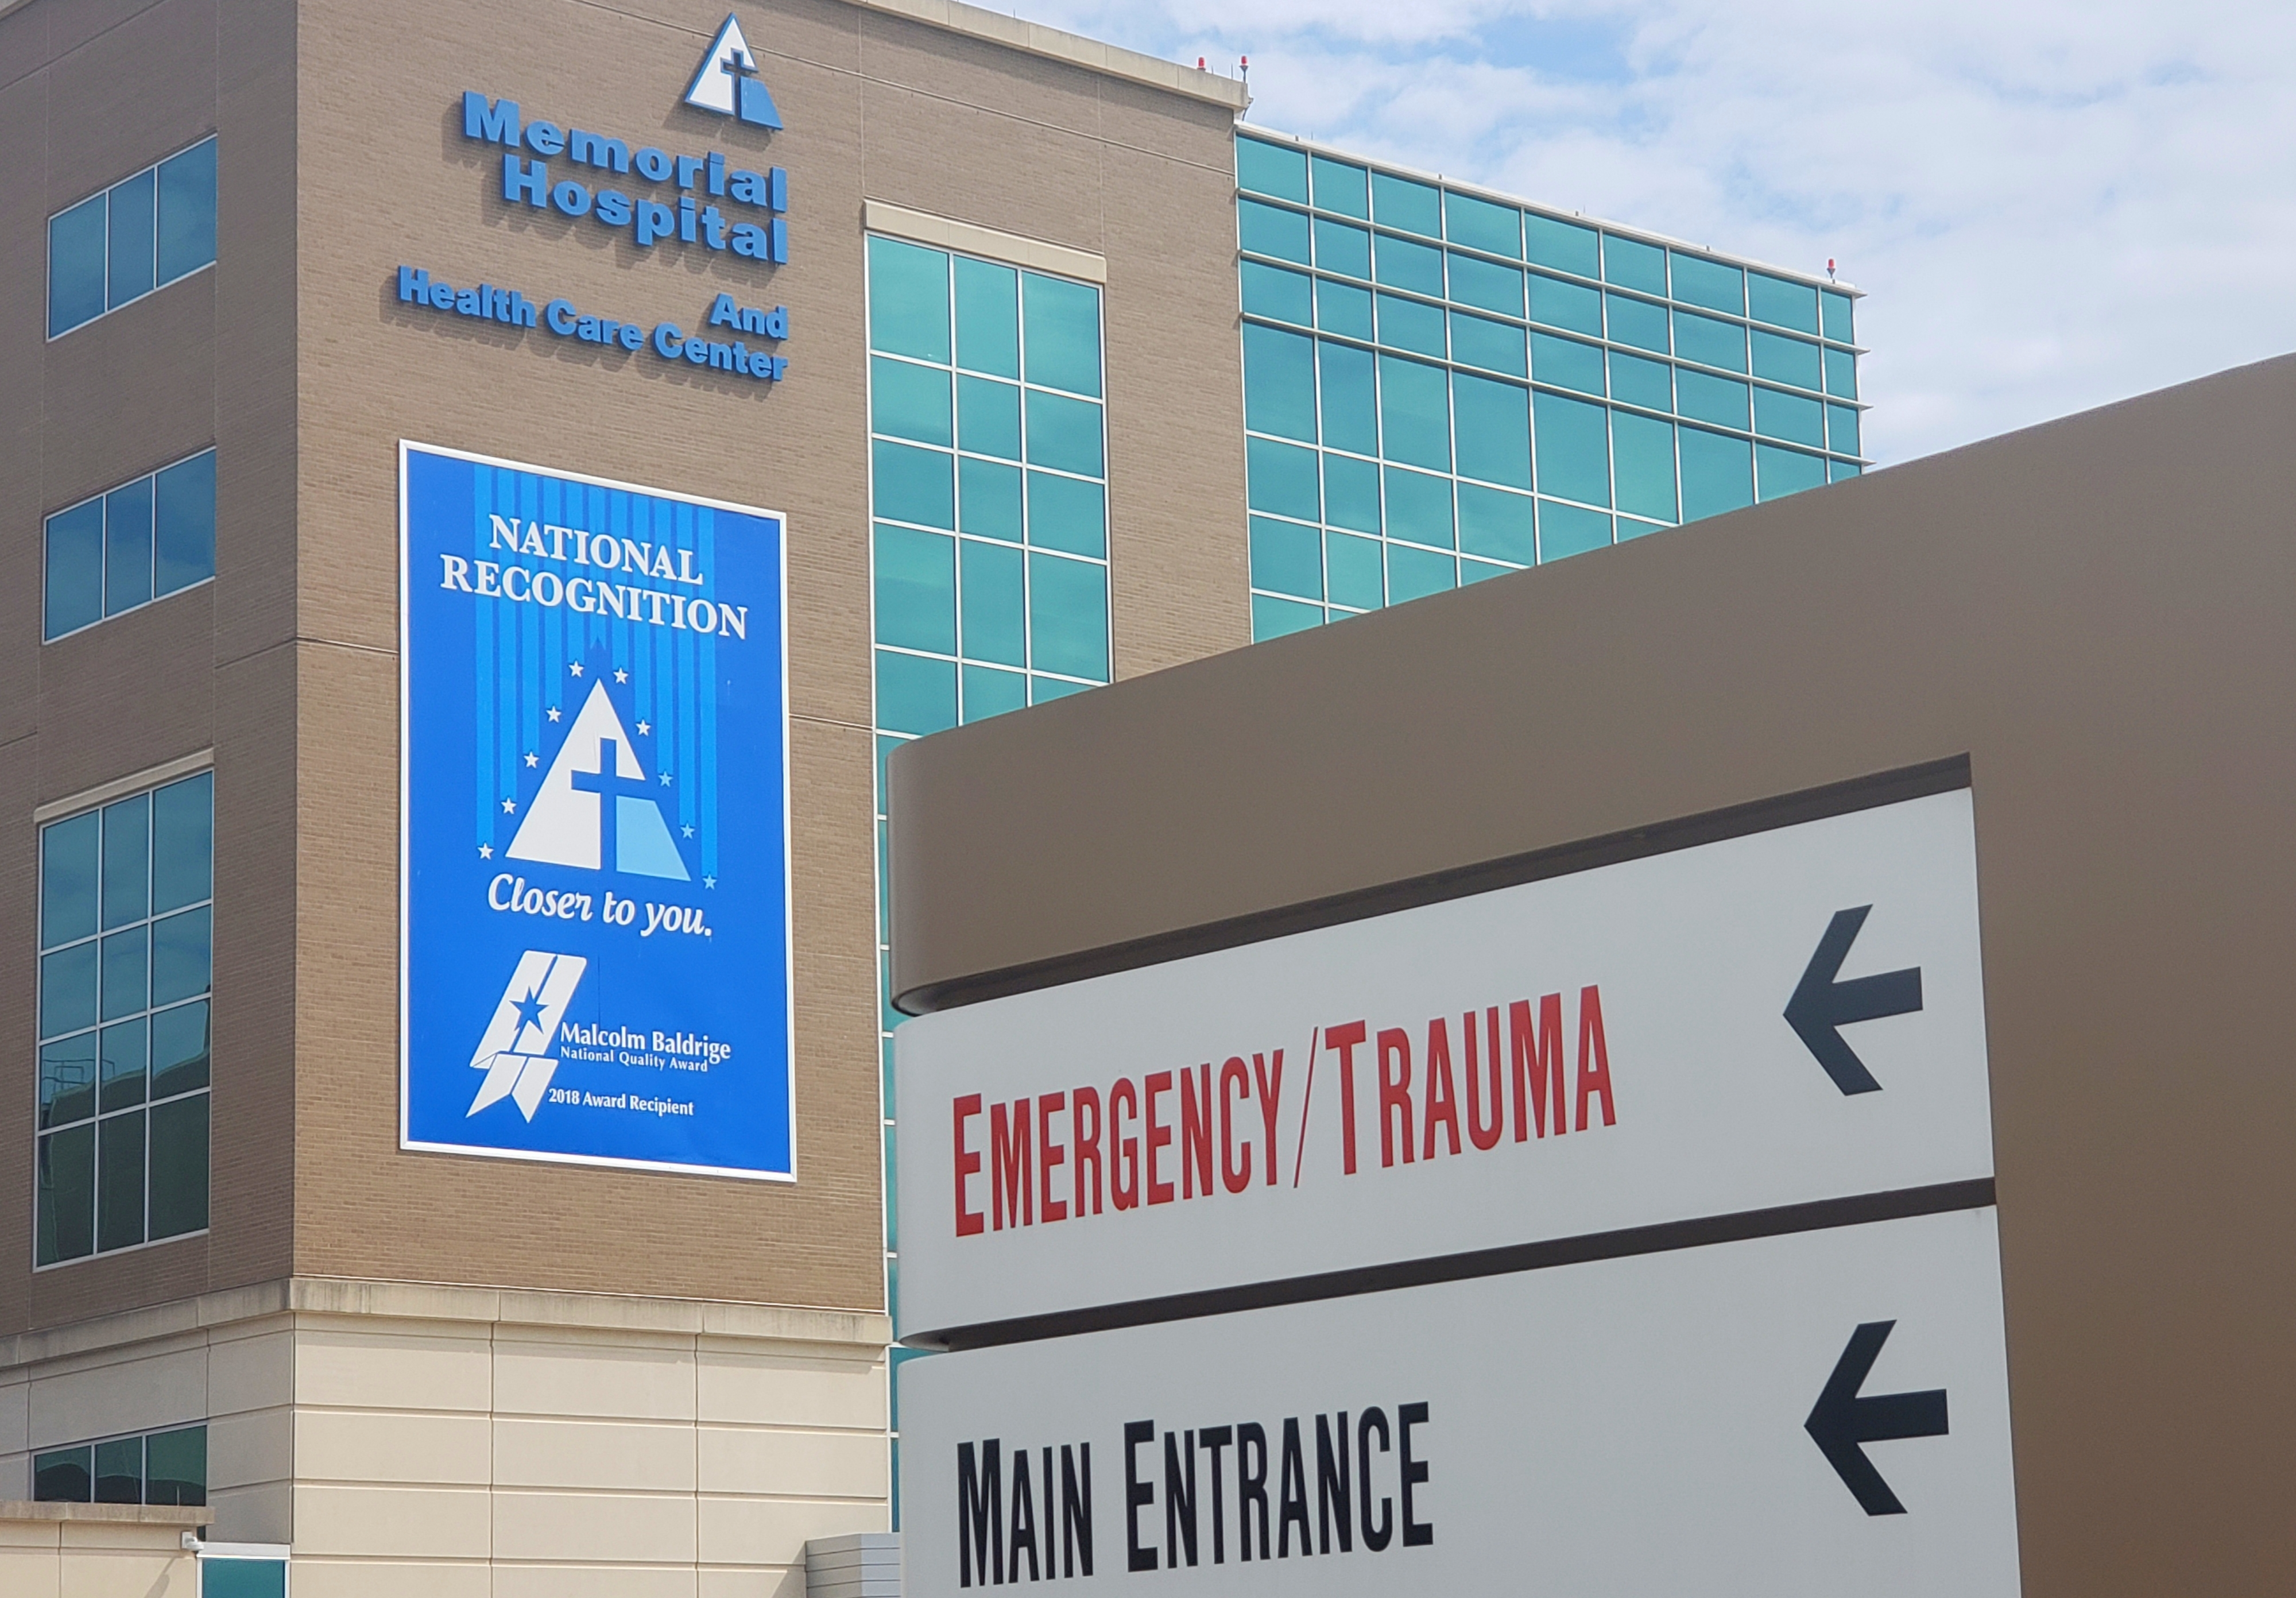 Memorial Hospital Announces Modified Hours Due to Significant Winter Storm